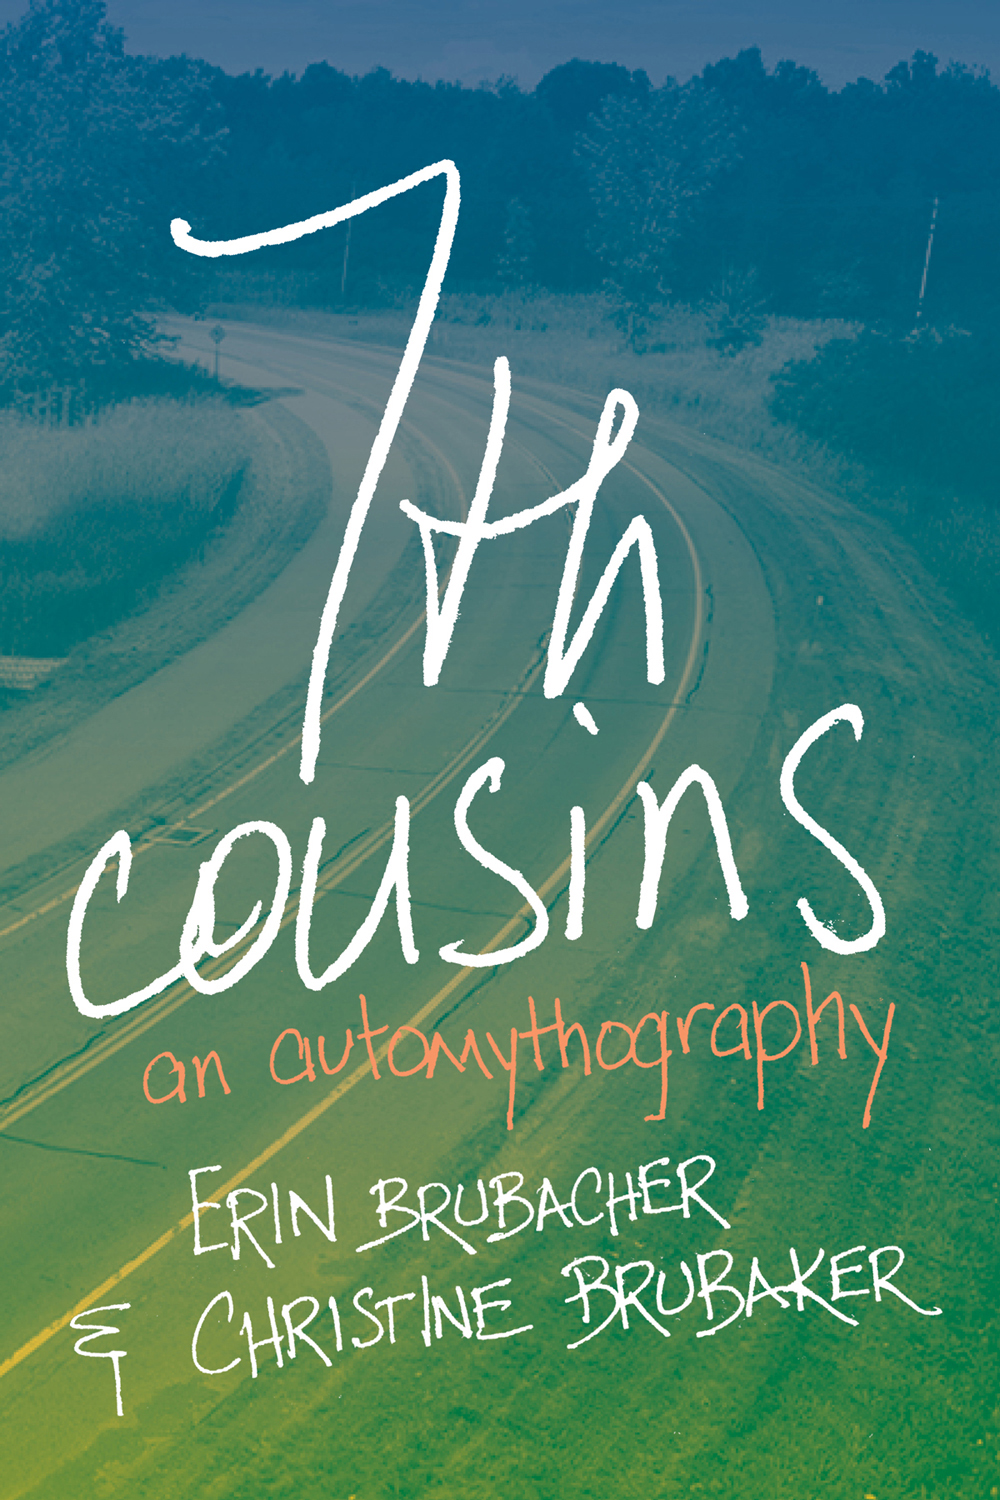 7th Cousins: An Automythography